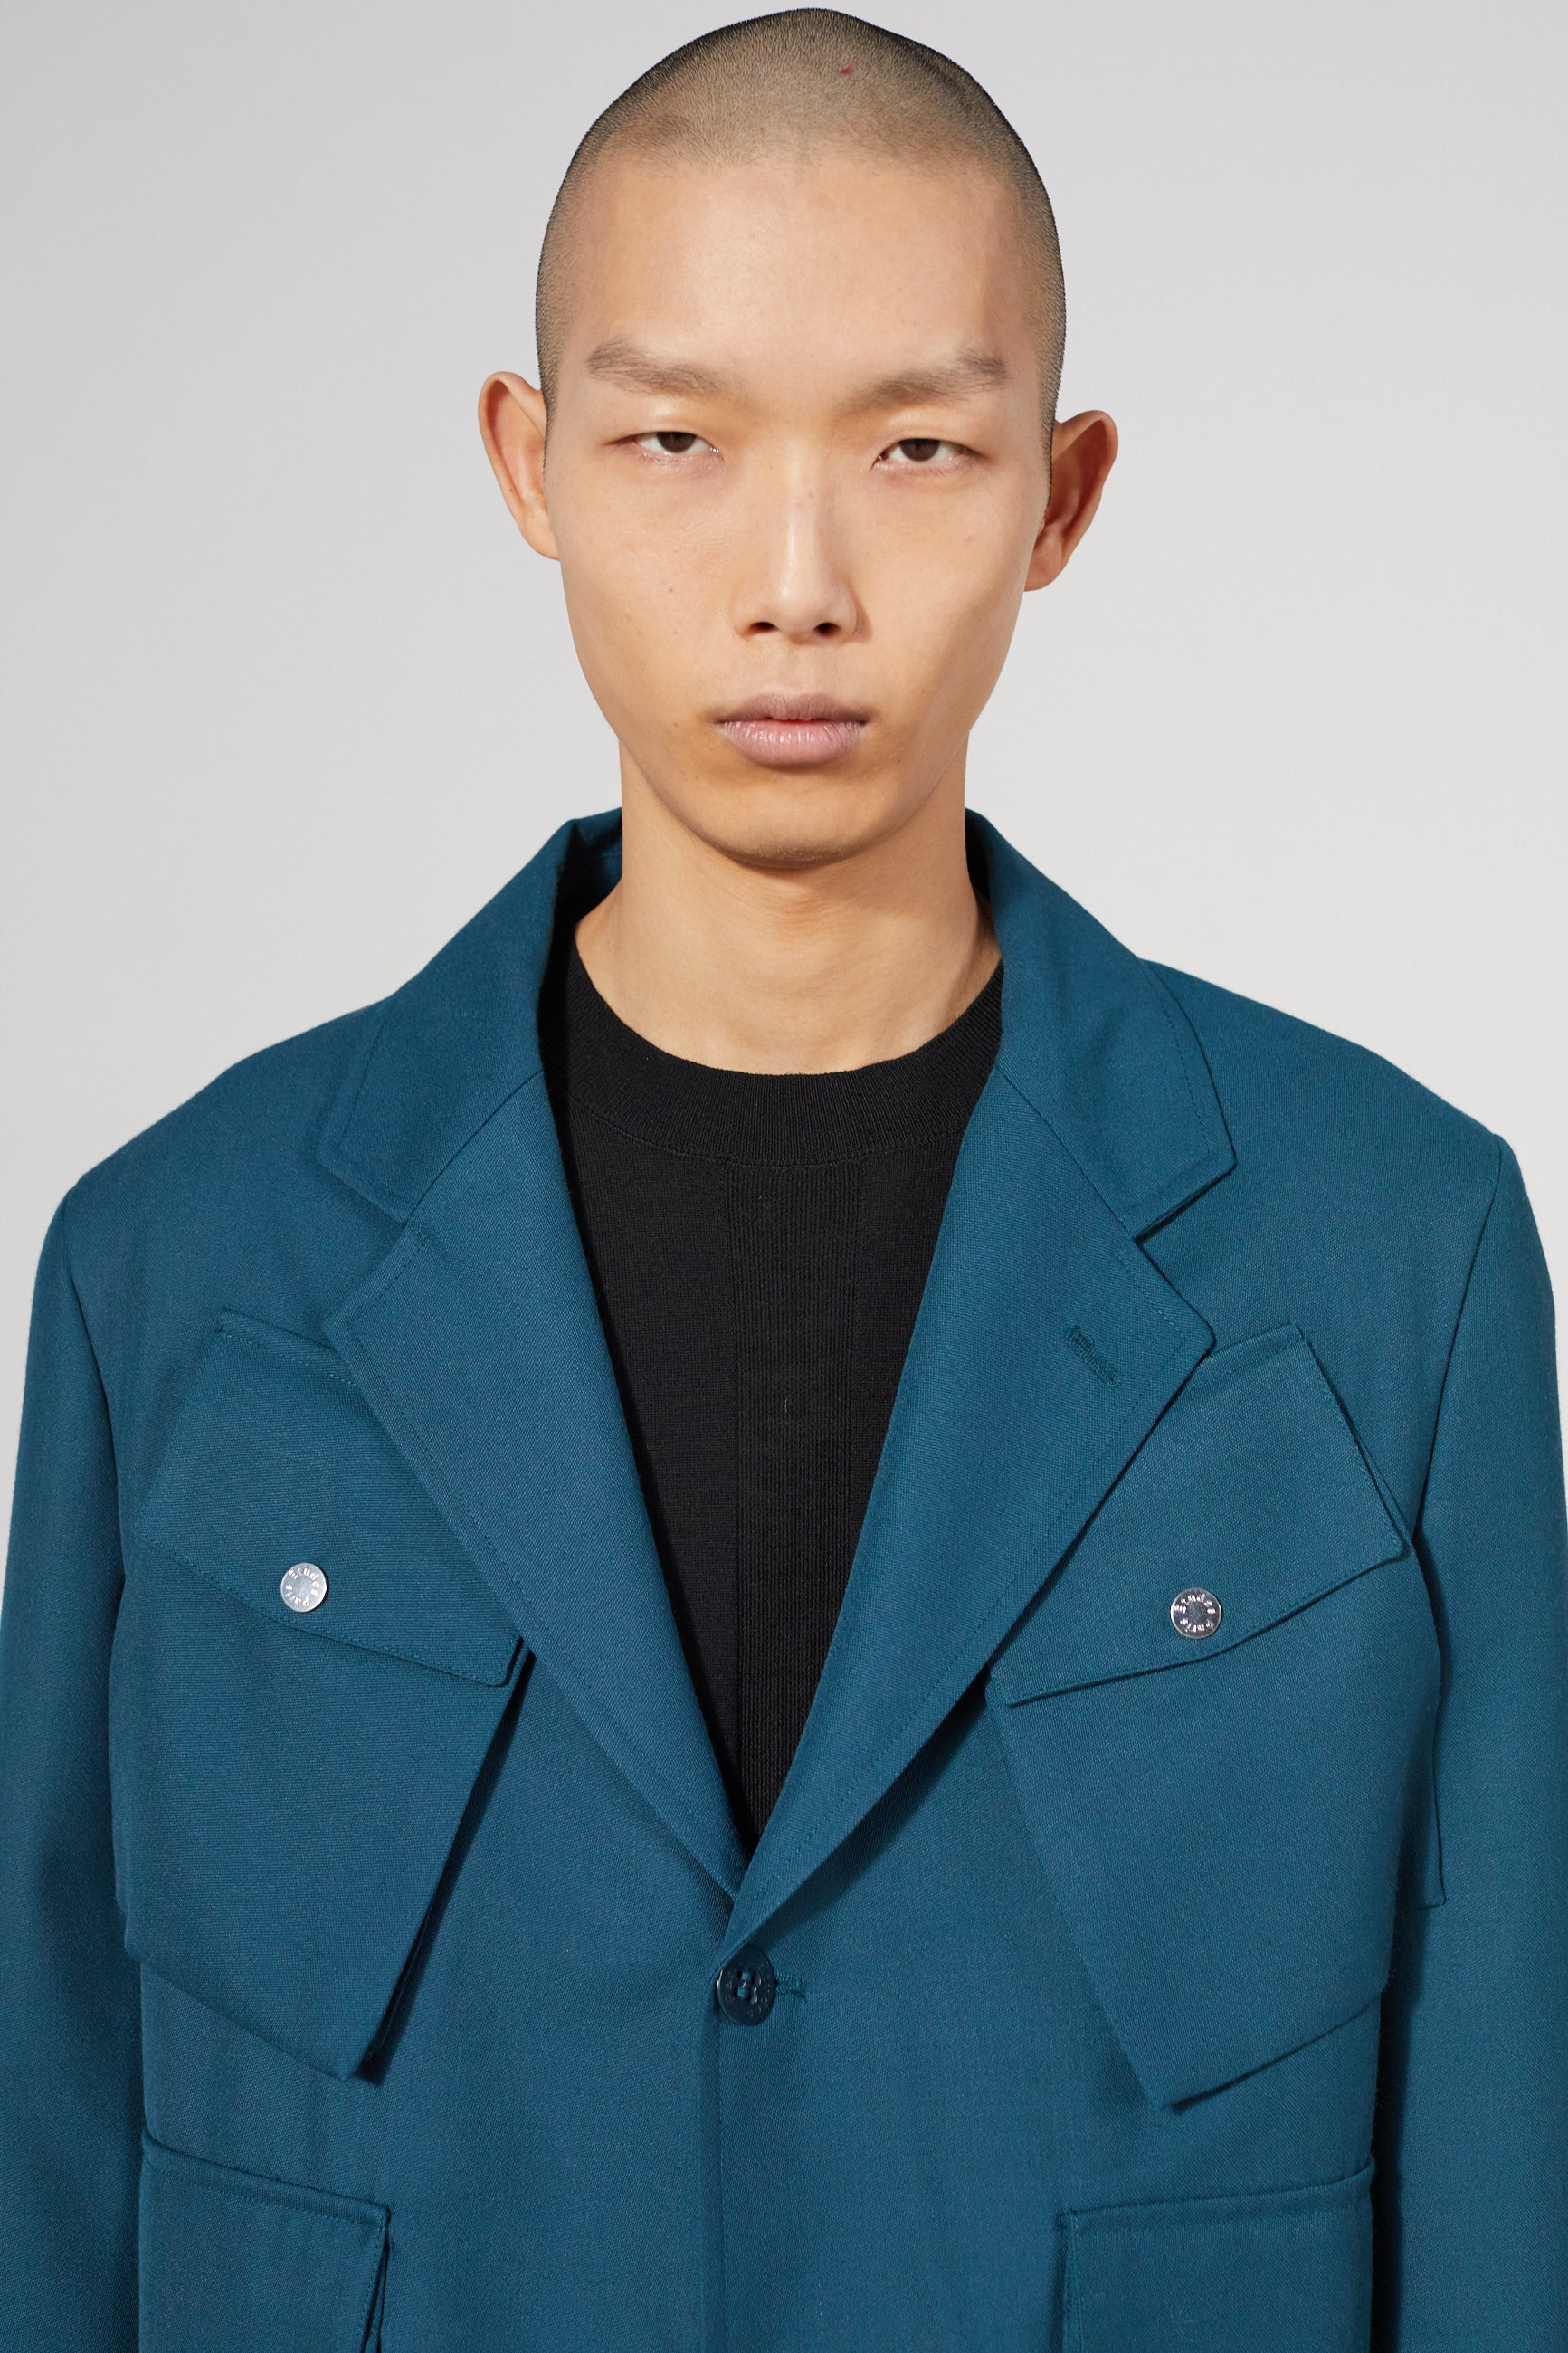 EARTH POCKET TEAL BLAZER